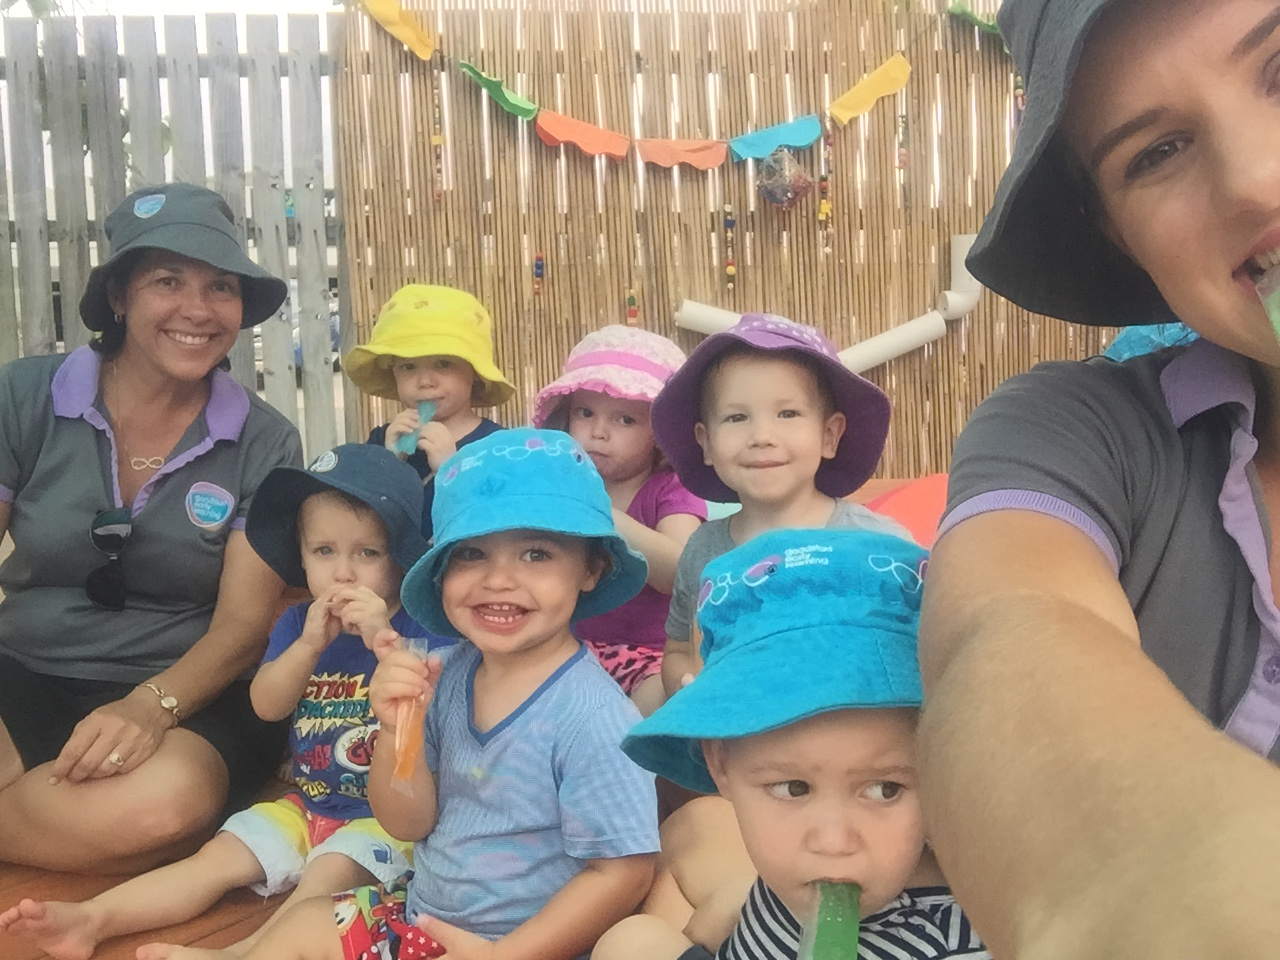 Dream to work in childcare comes true for Shaylagh